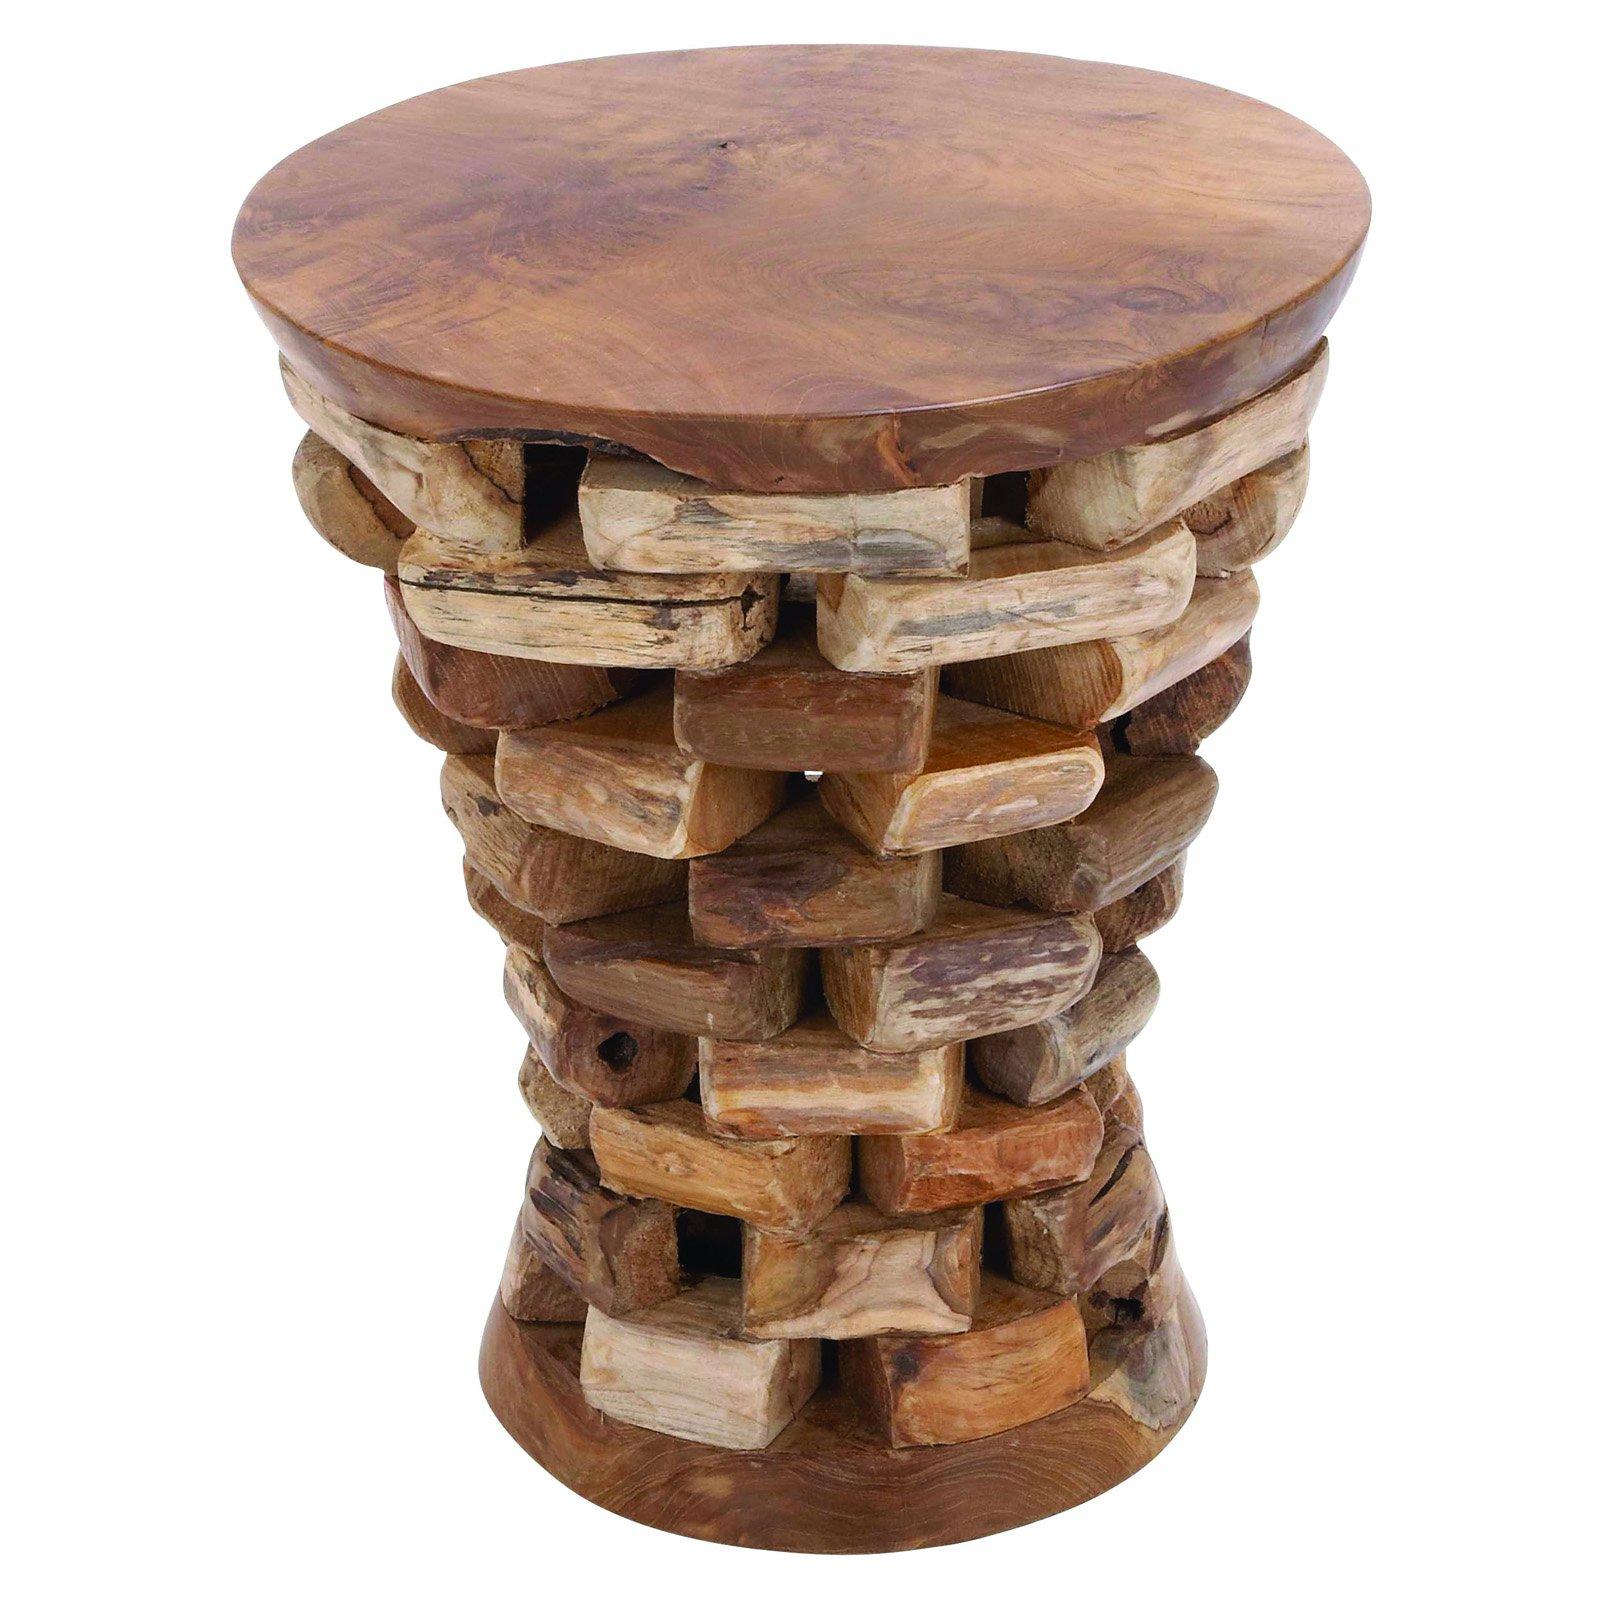 rustic live edge natural popular hardwood end table wood benzara round shaped teak wooden accent drum stylish lamps oak mirrored nightstand home goods foyer chest furniture desk